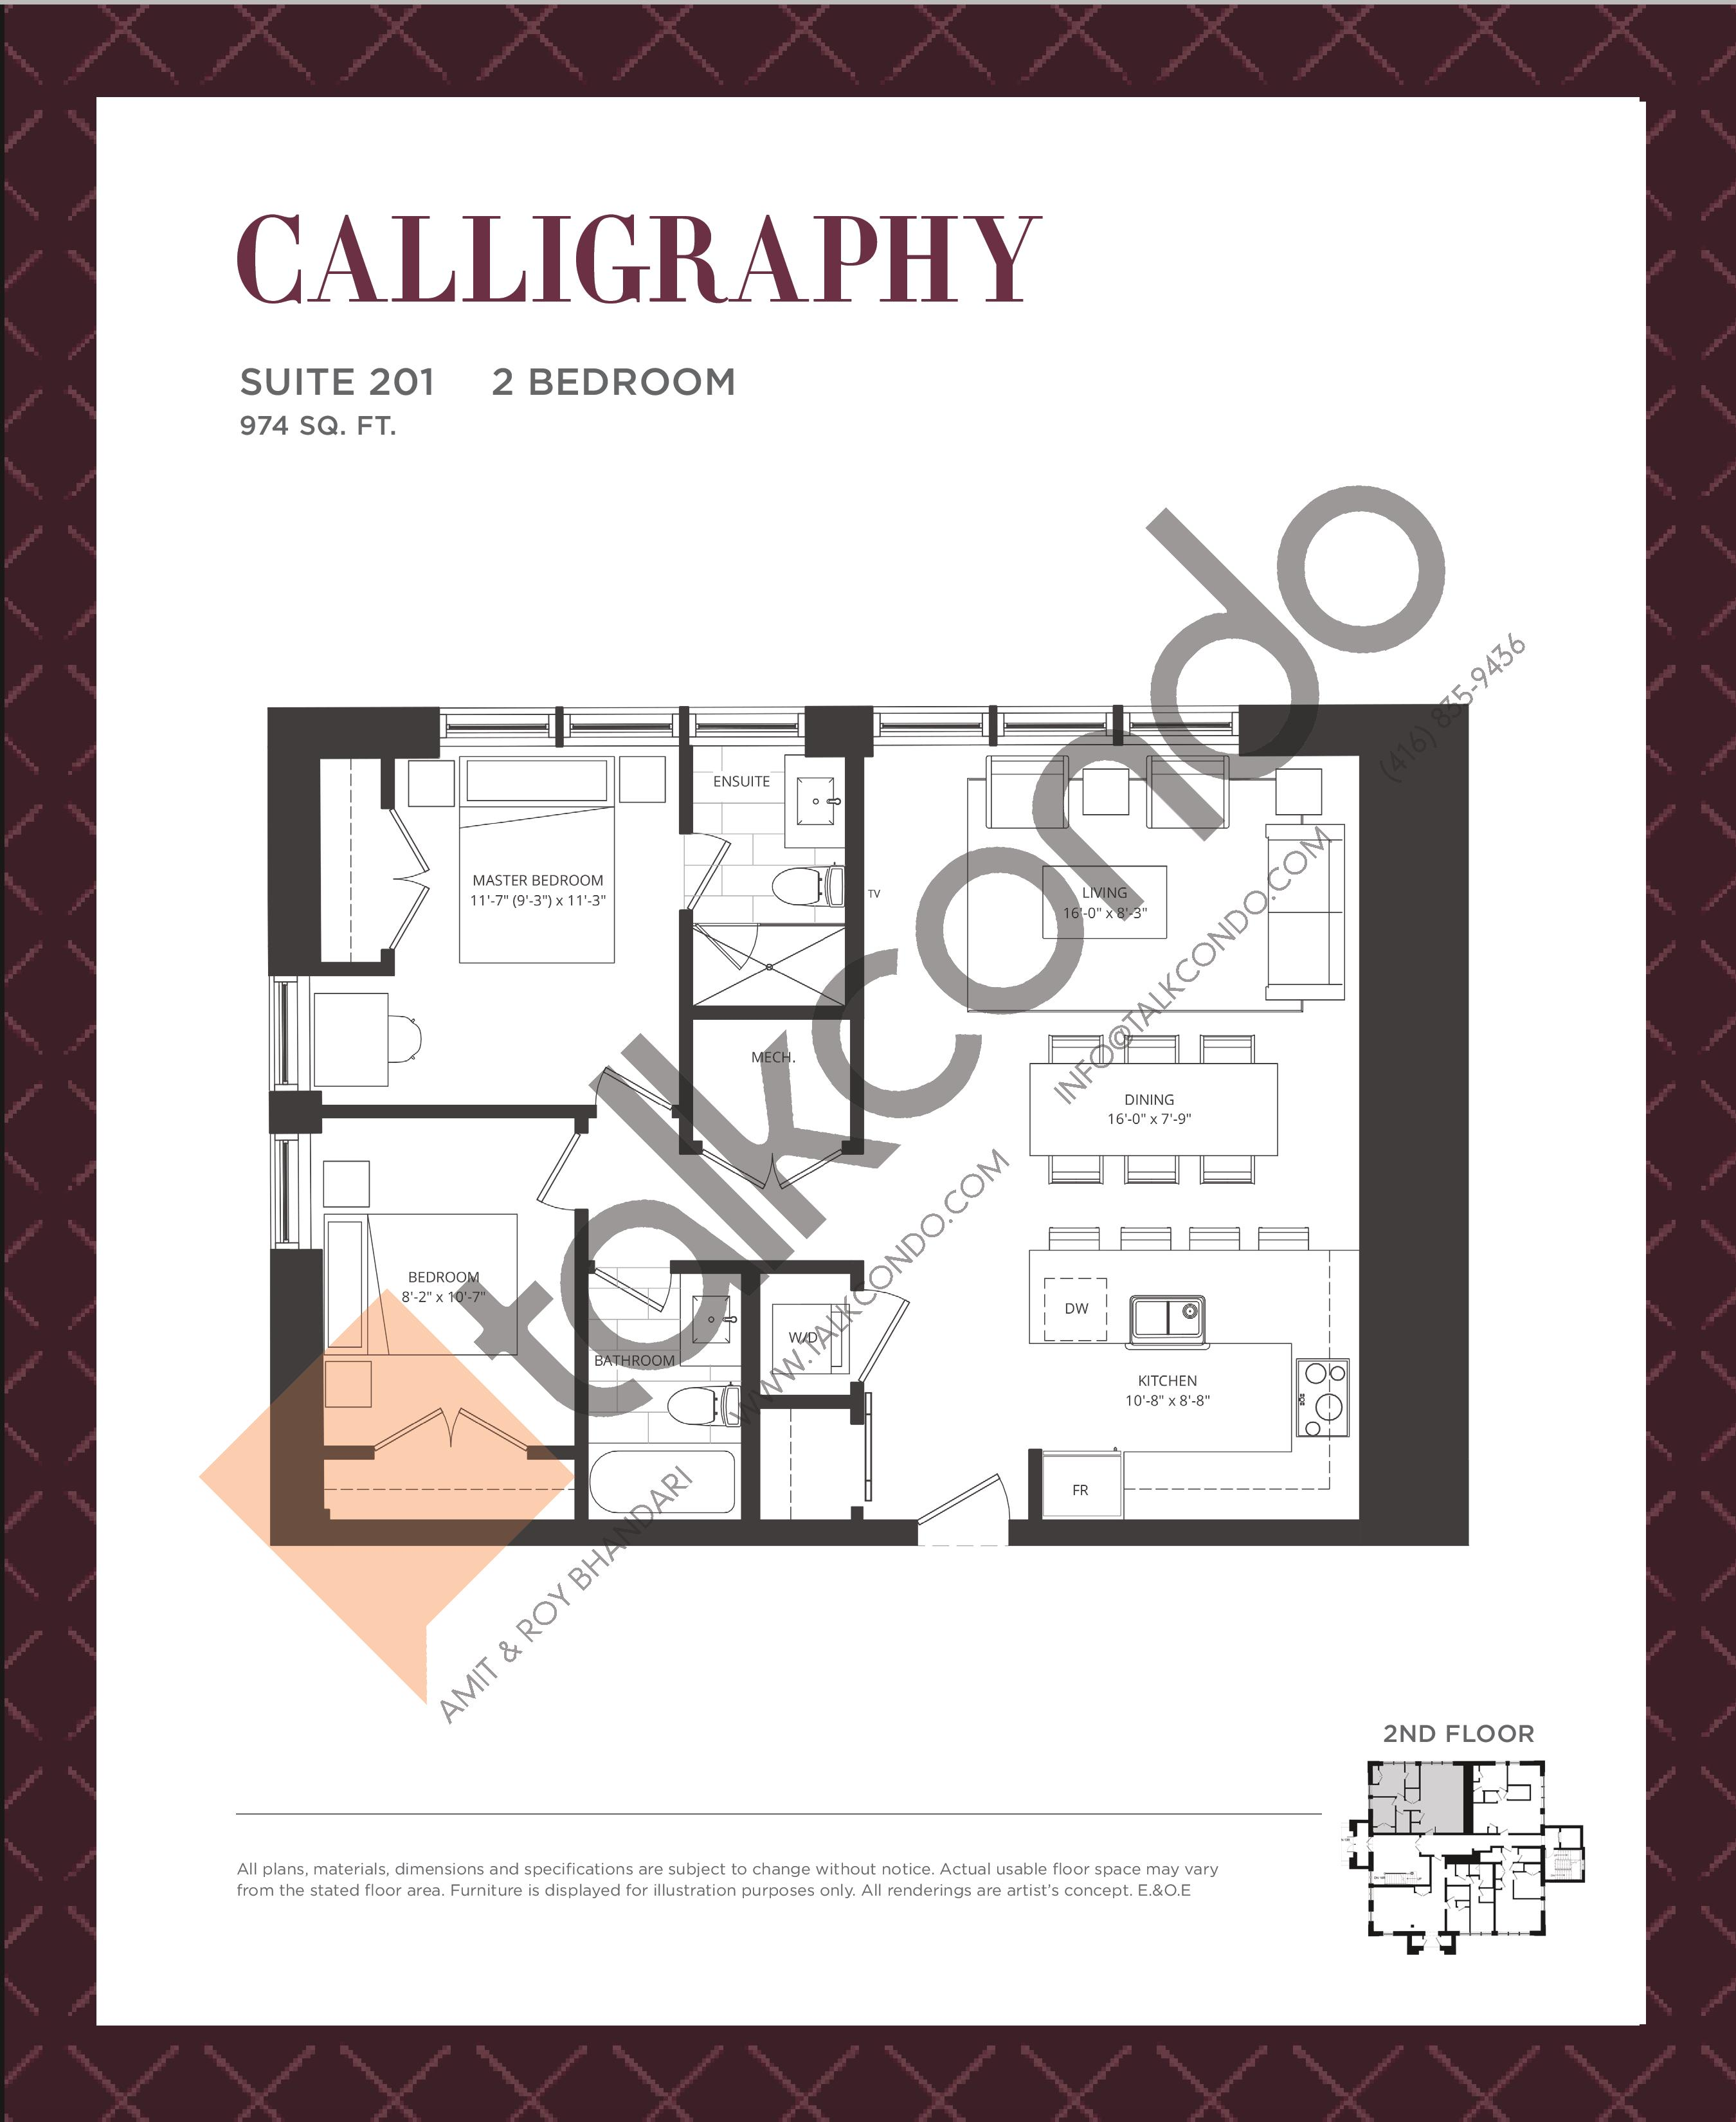 Calligraphy Floor Plan at King George School Lofts & Town Homes - 974 sq.ft